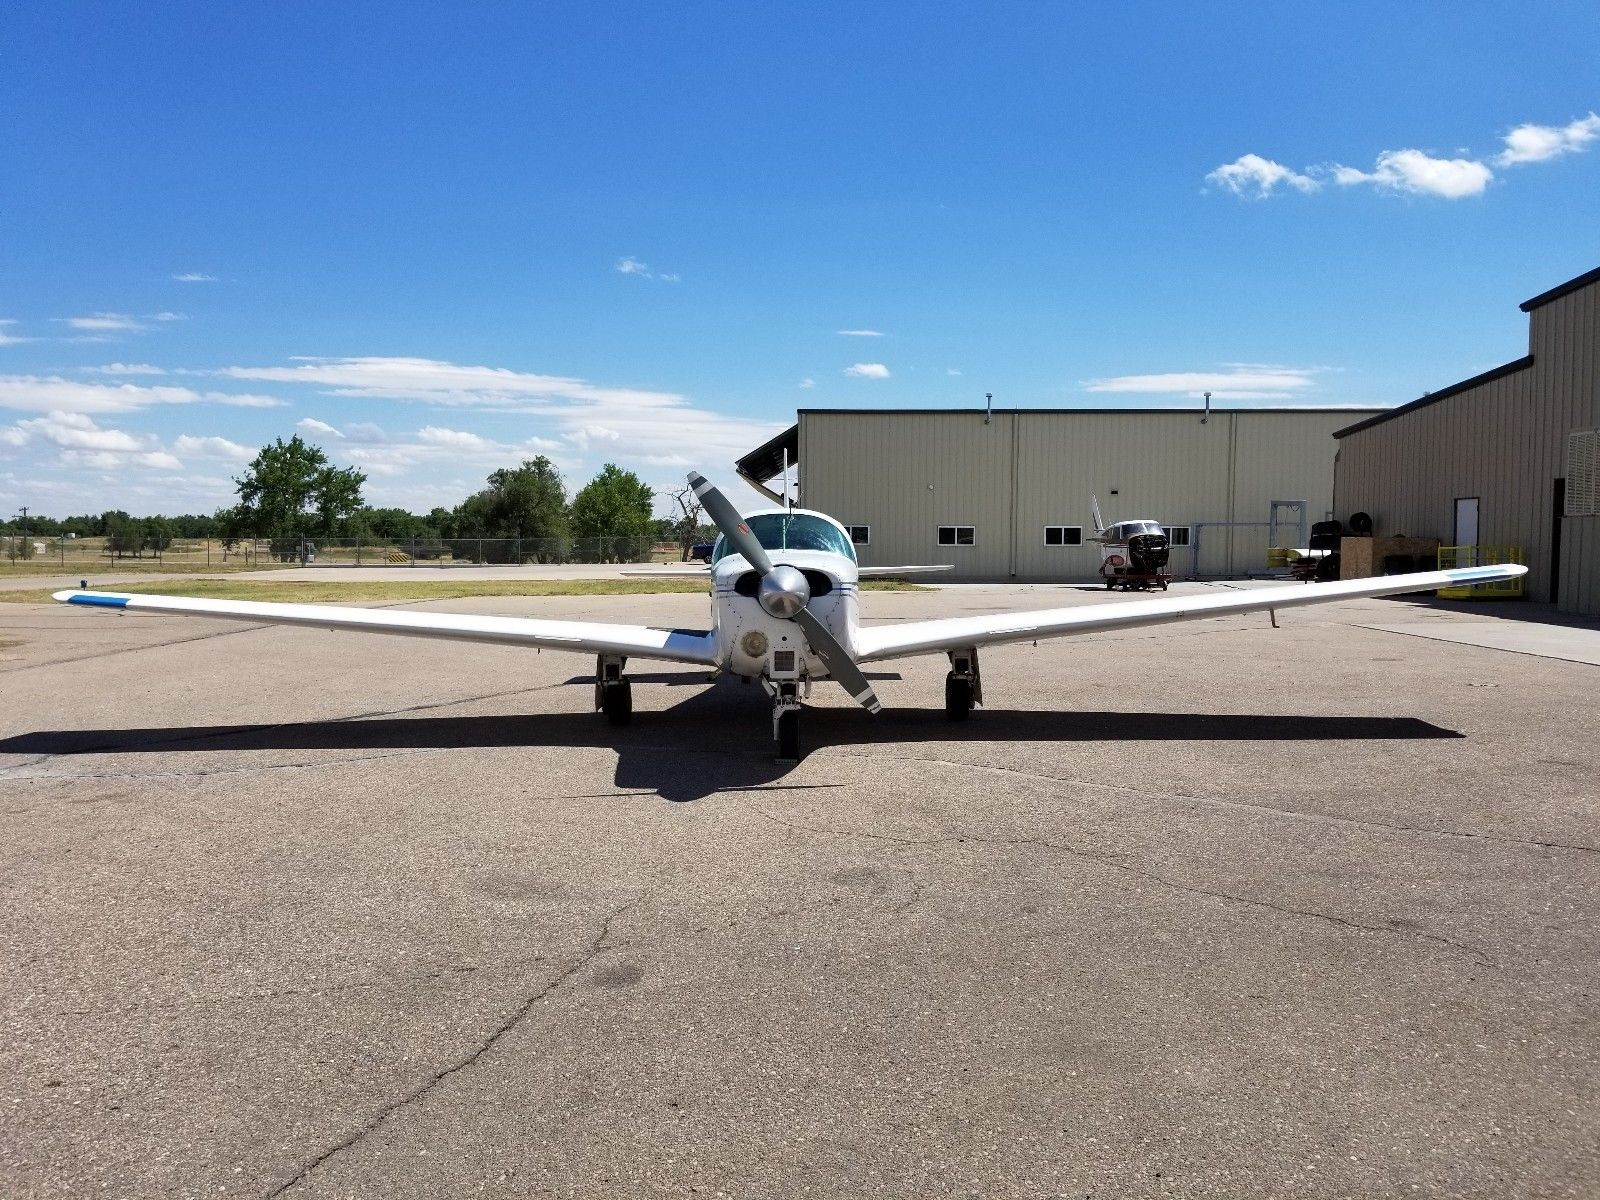 some imperfections 1963 Mooney M20C aircraft for sale